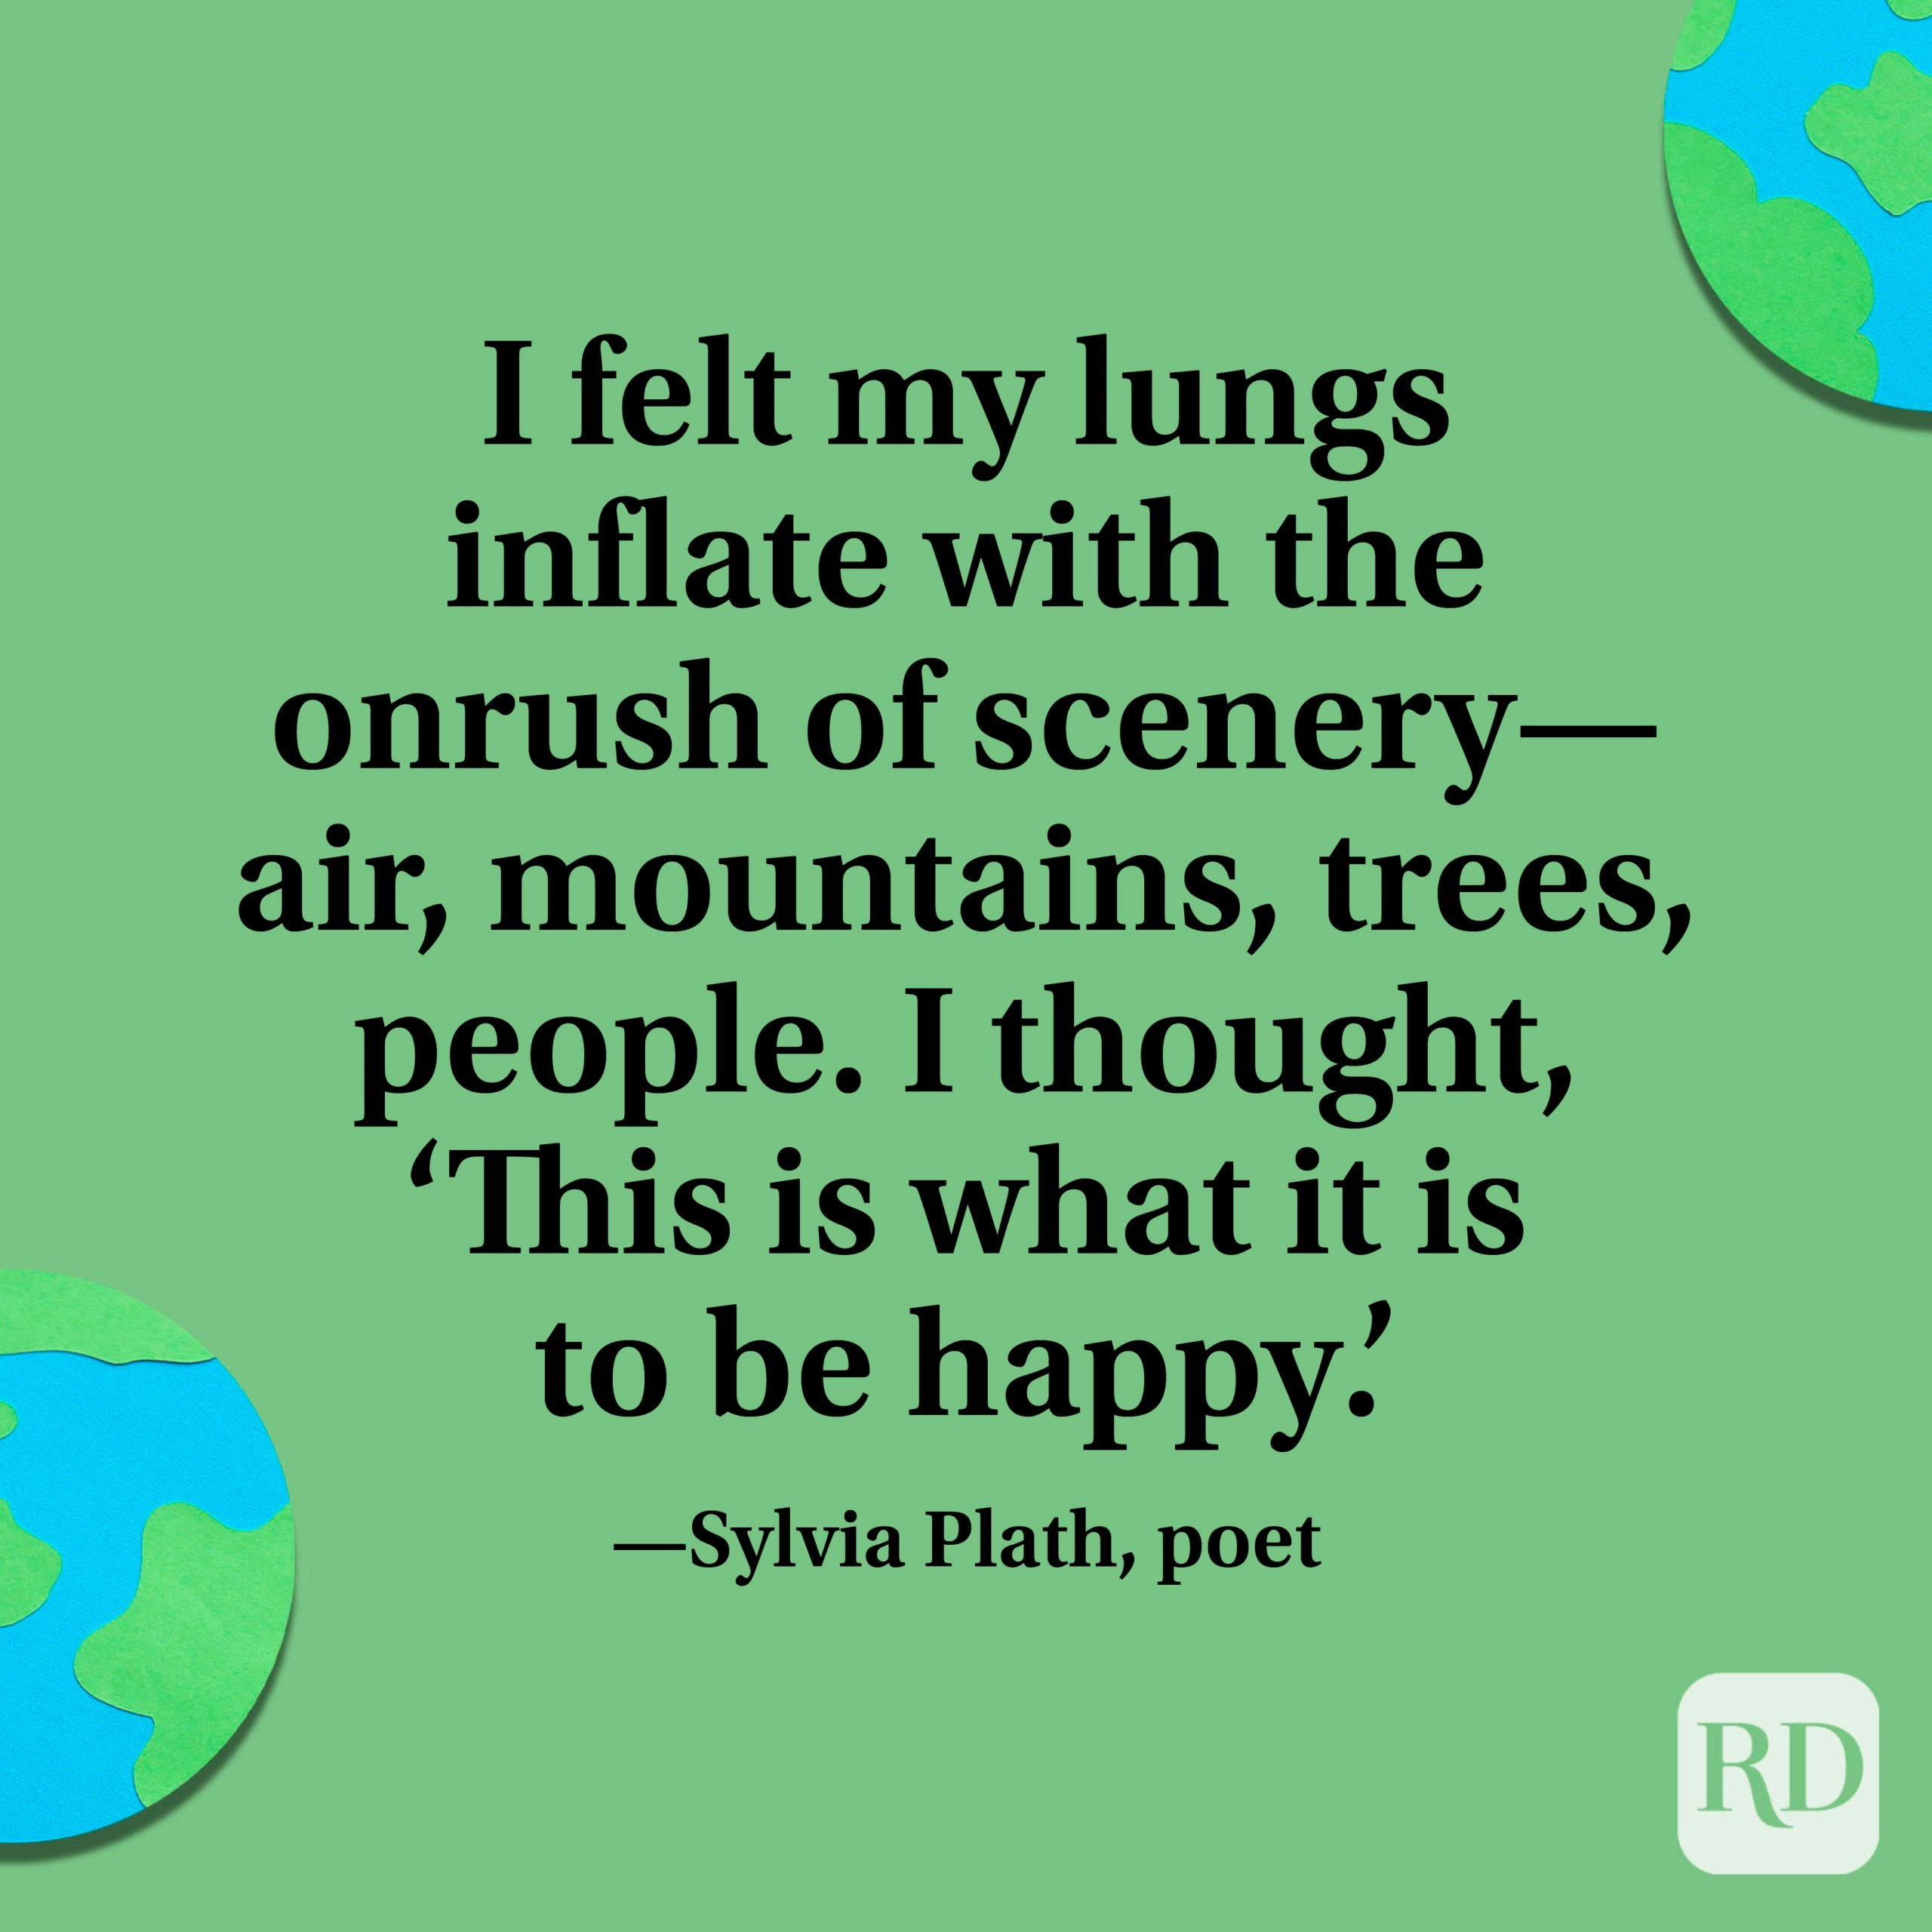 """""""I felt my lungs inflate with the onrush of scenery—air, mountains, trees, people. I thought, 'This is what it is to be happy.'"""" —Sylvia Plath, poet"""